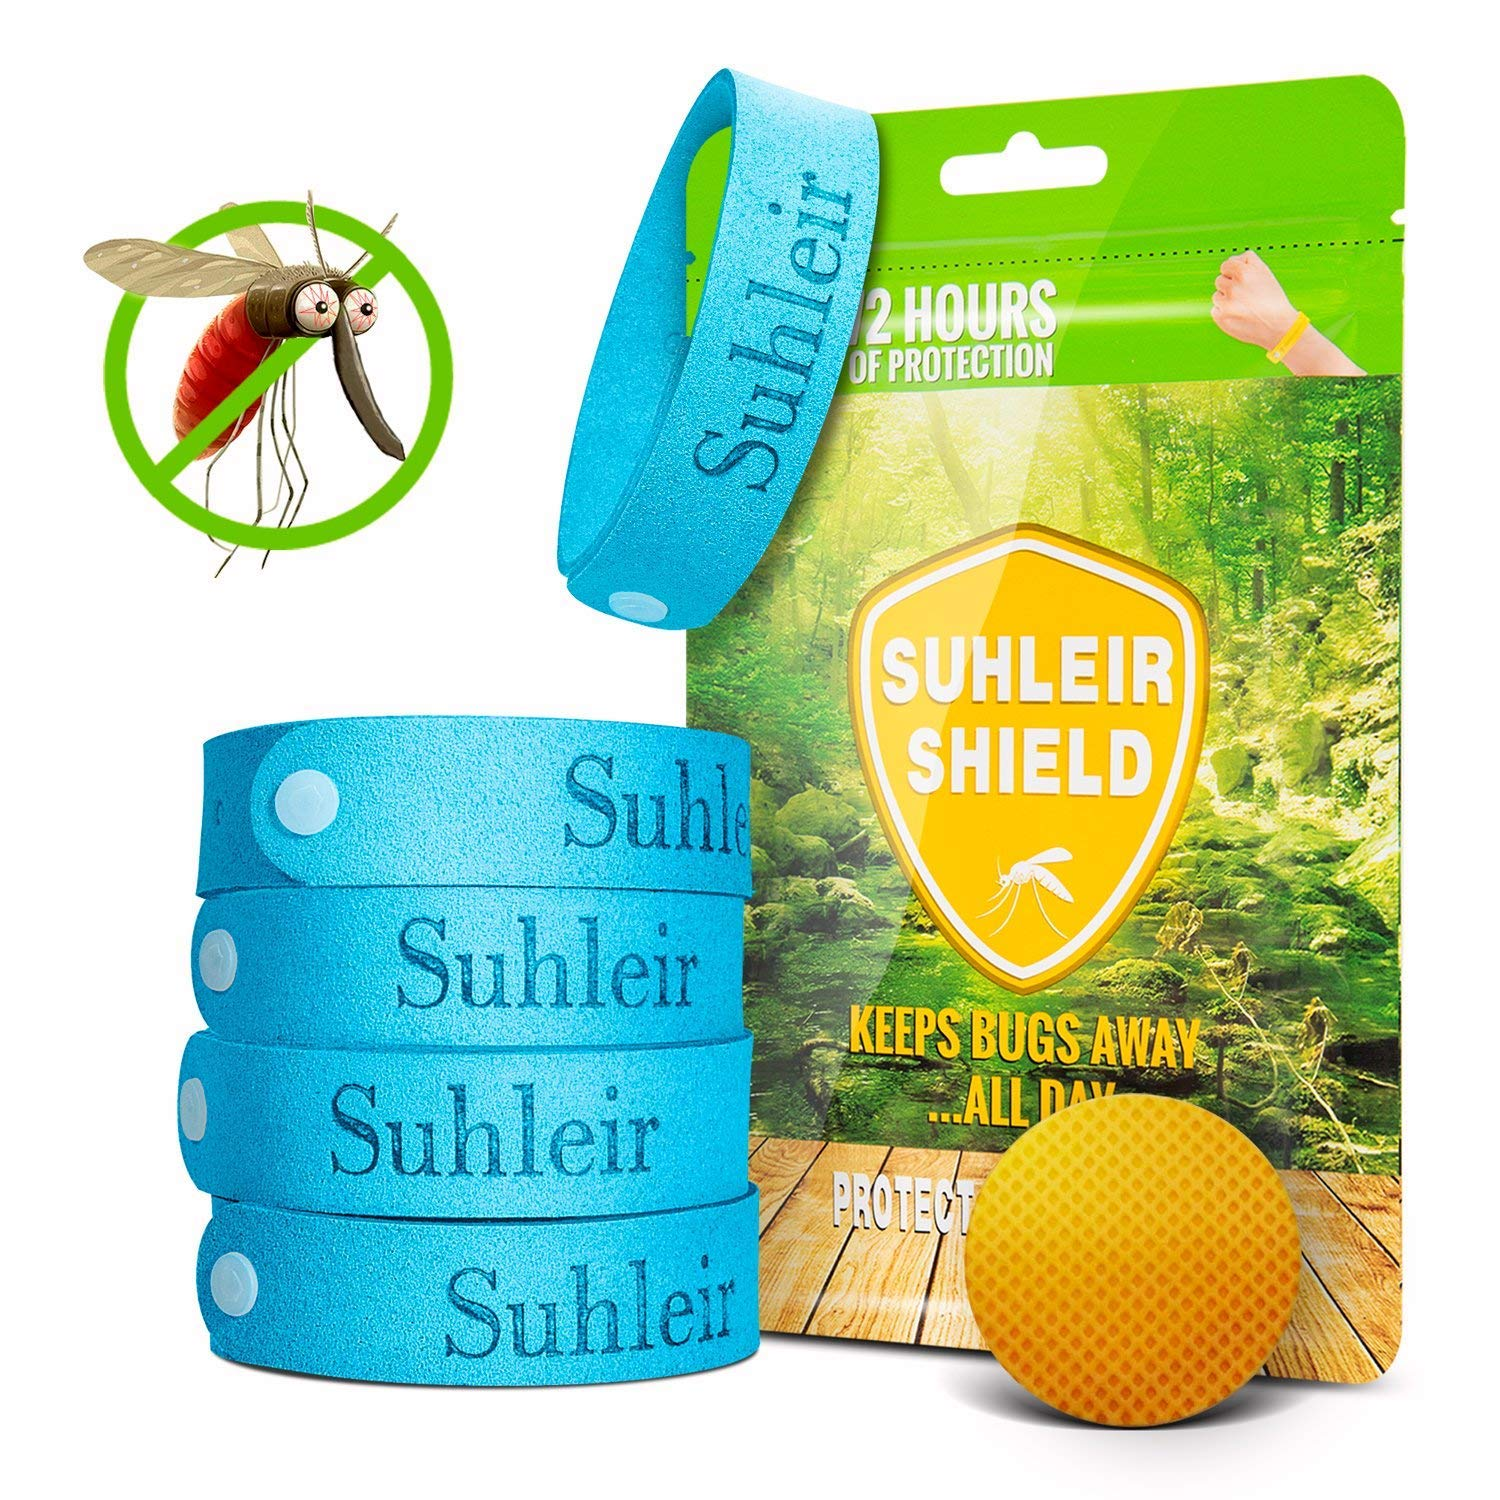 12 pieces Mosquito Repellent Bands Against Insects 100/% Natural Plant Extract for Children and Adults Anti-mosquito Bracelets VEGKEY Mosquito Repellent Bracelet